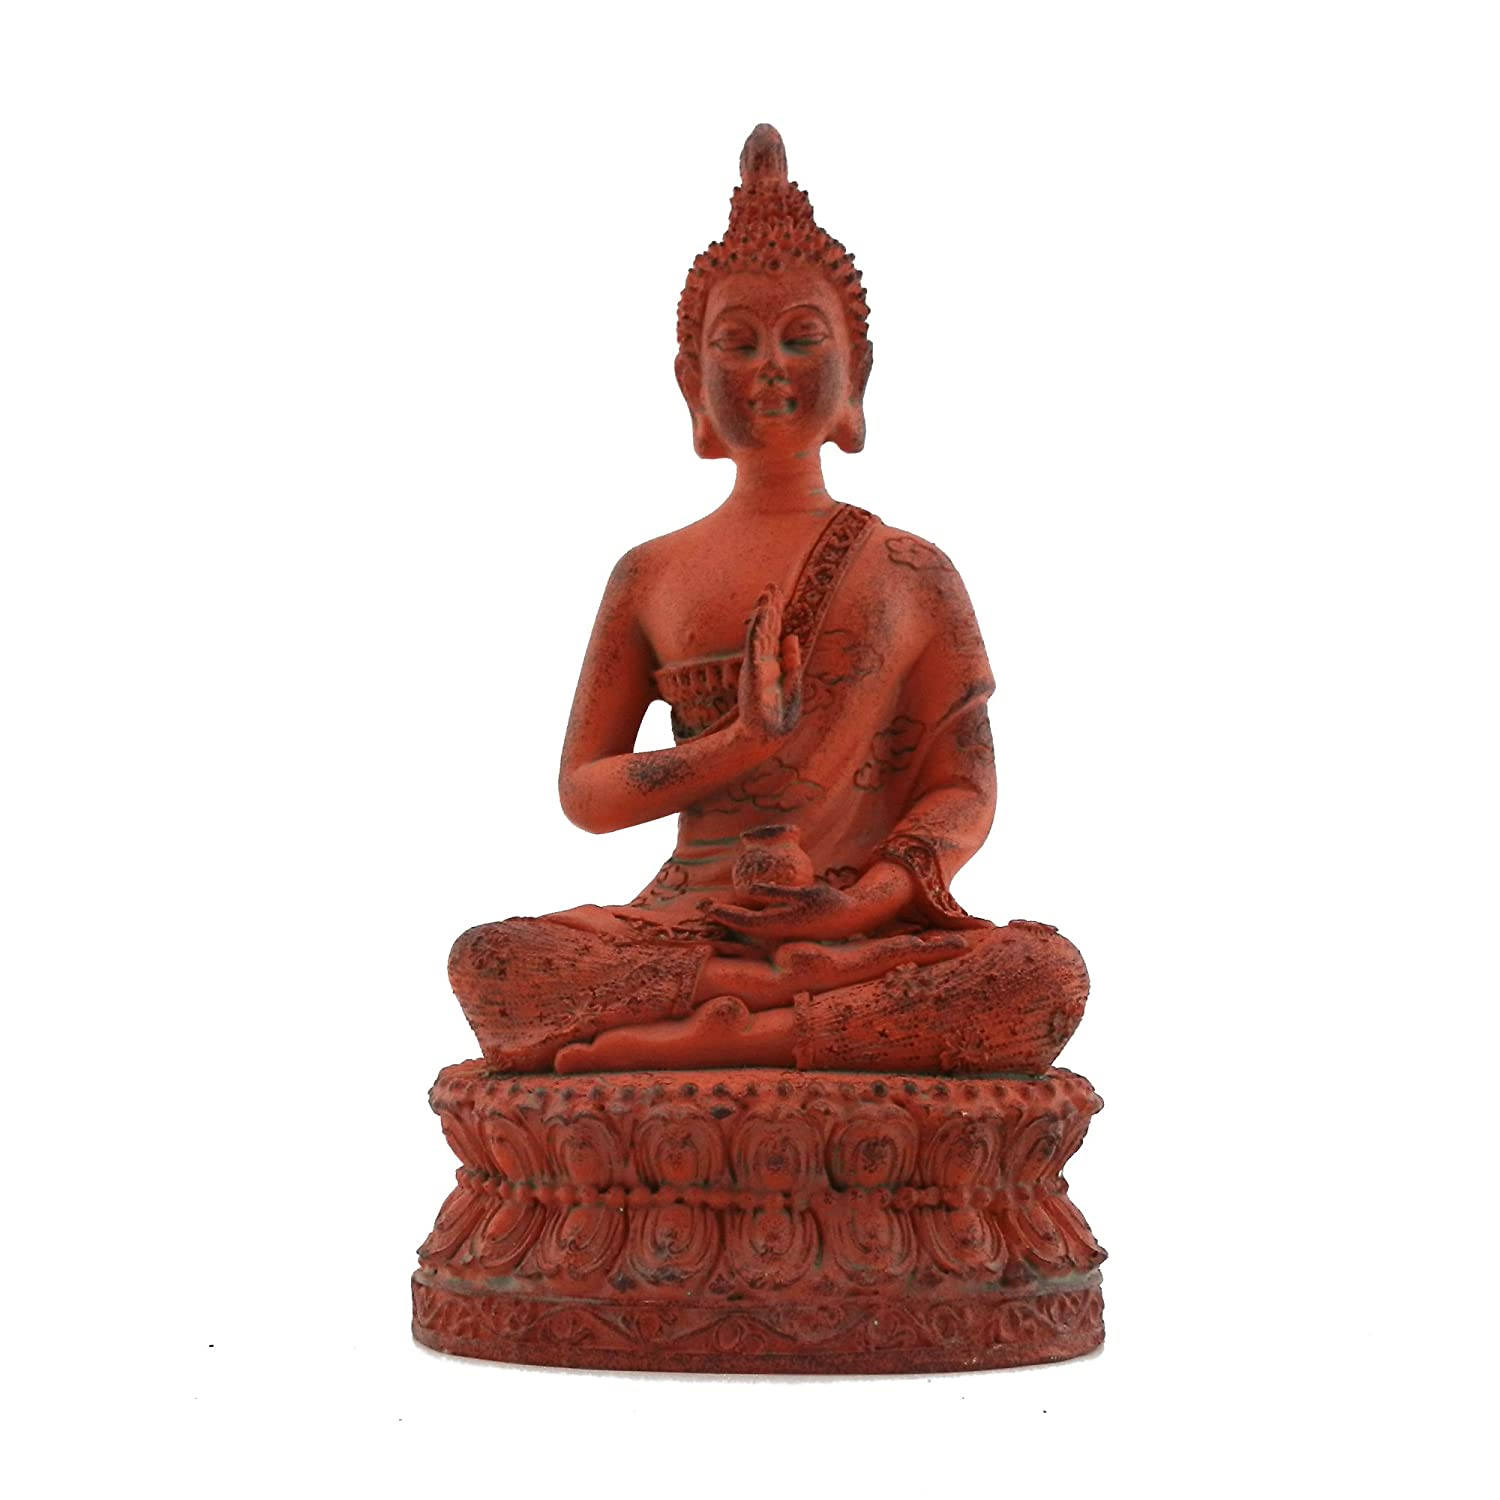 ornerx Thai Sitting Buddha Statue for Home Decor Verdigris 6.7